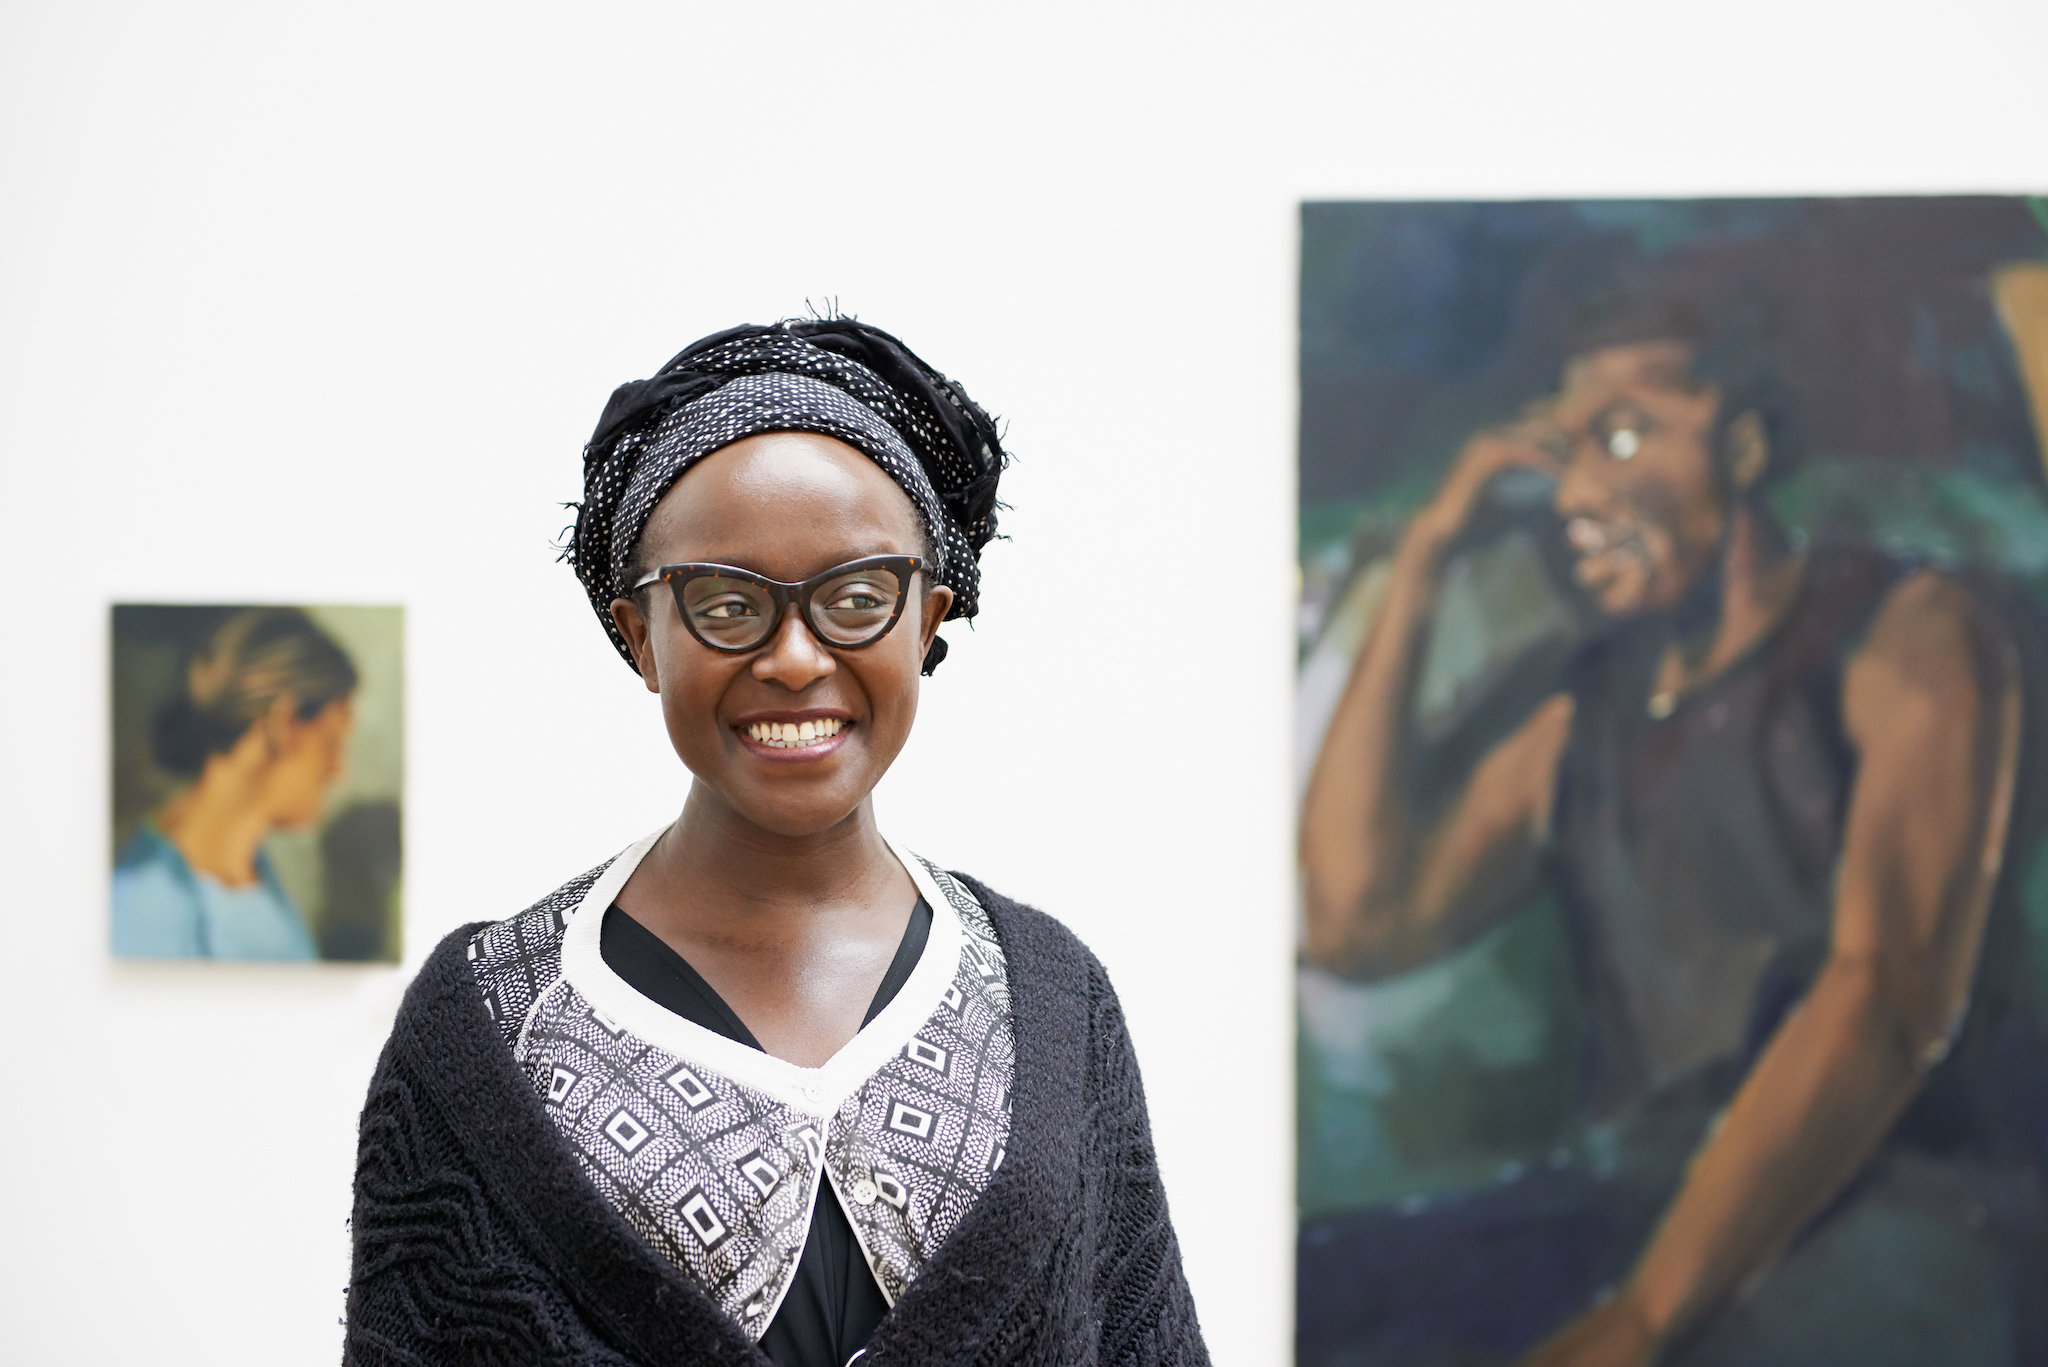 Lynette Yiadom-Boakye talks about creating fictional characters through portraiture